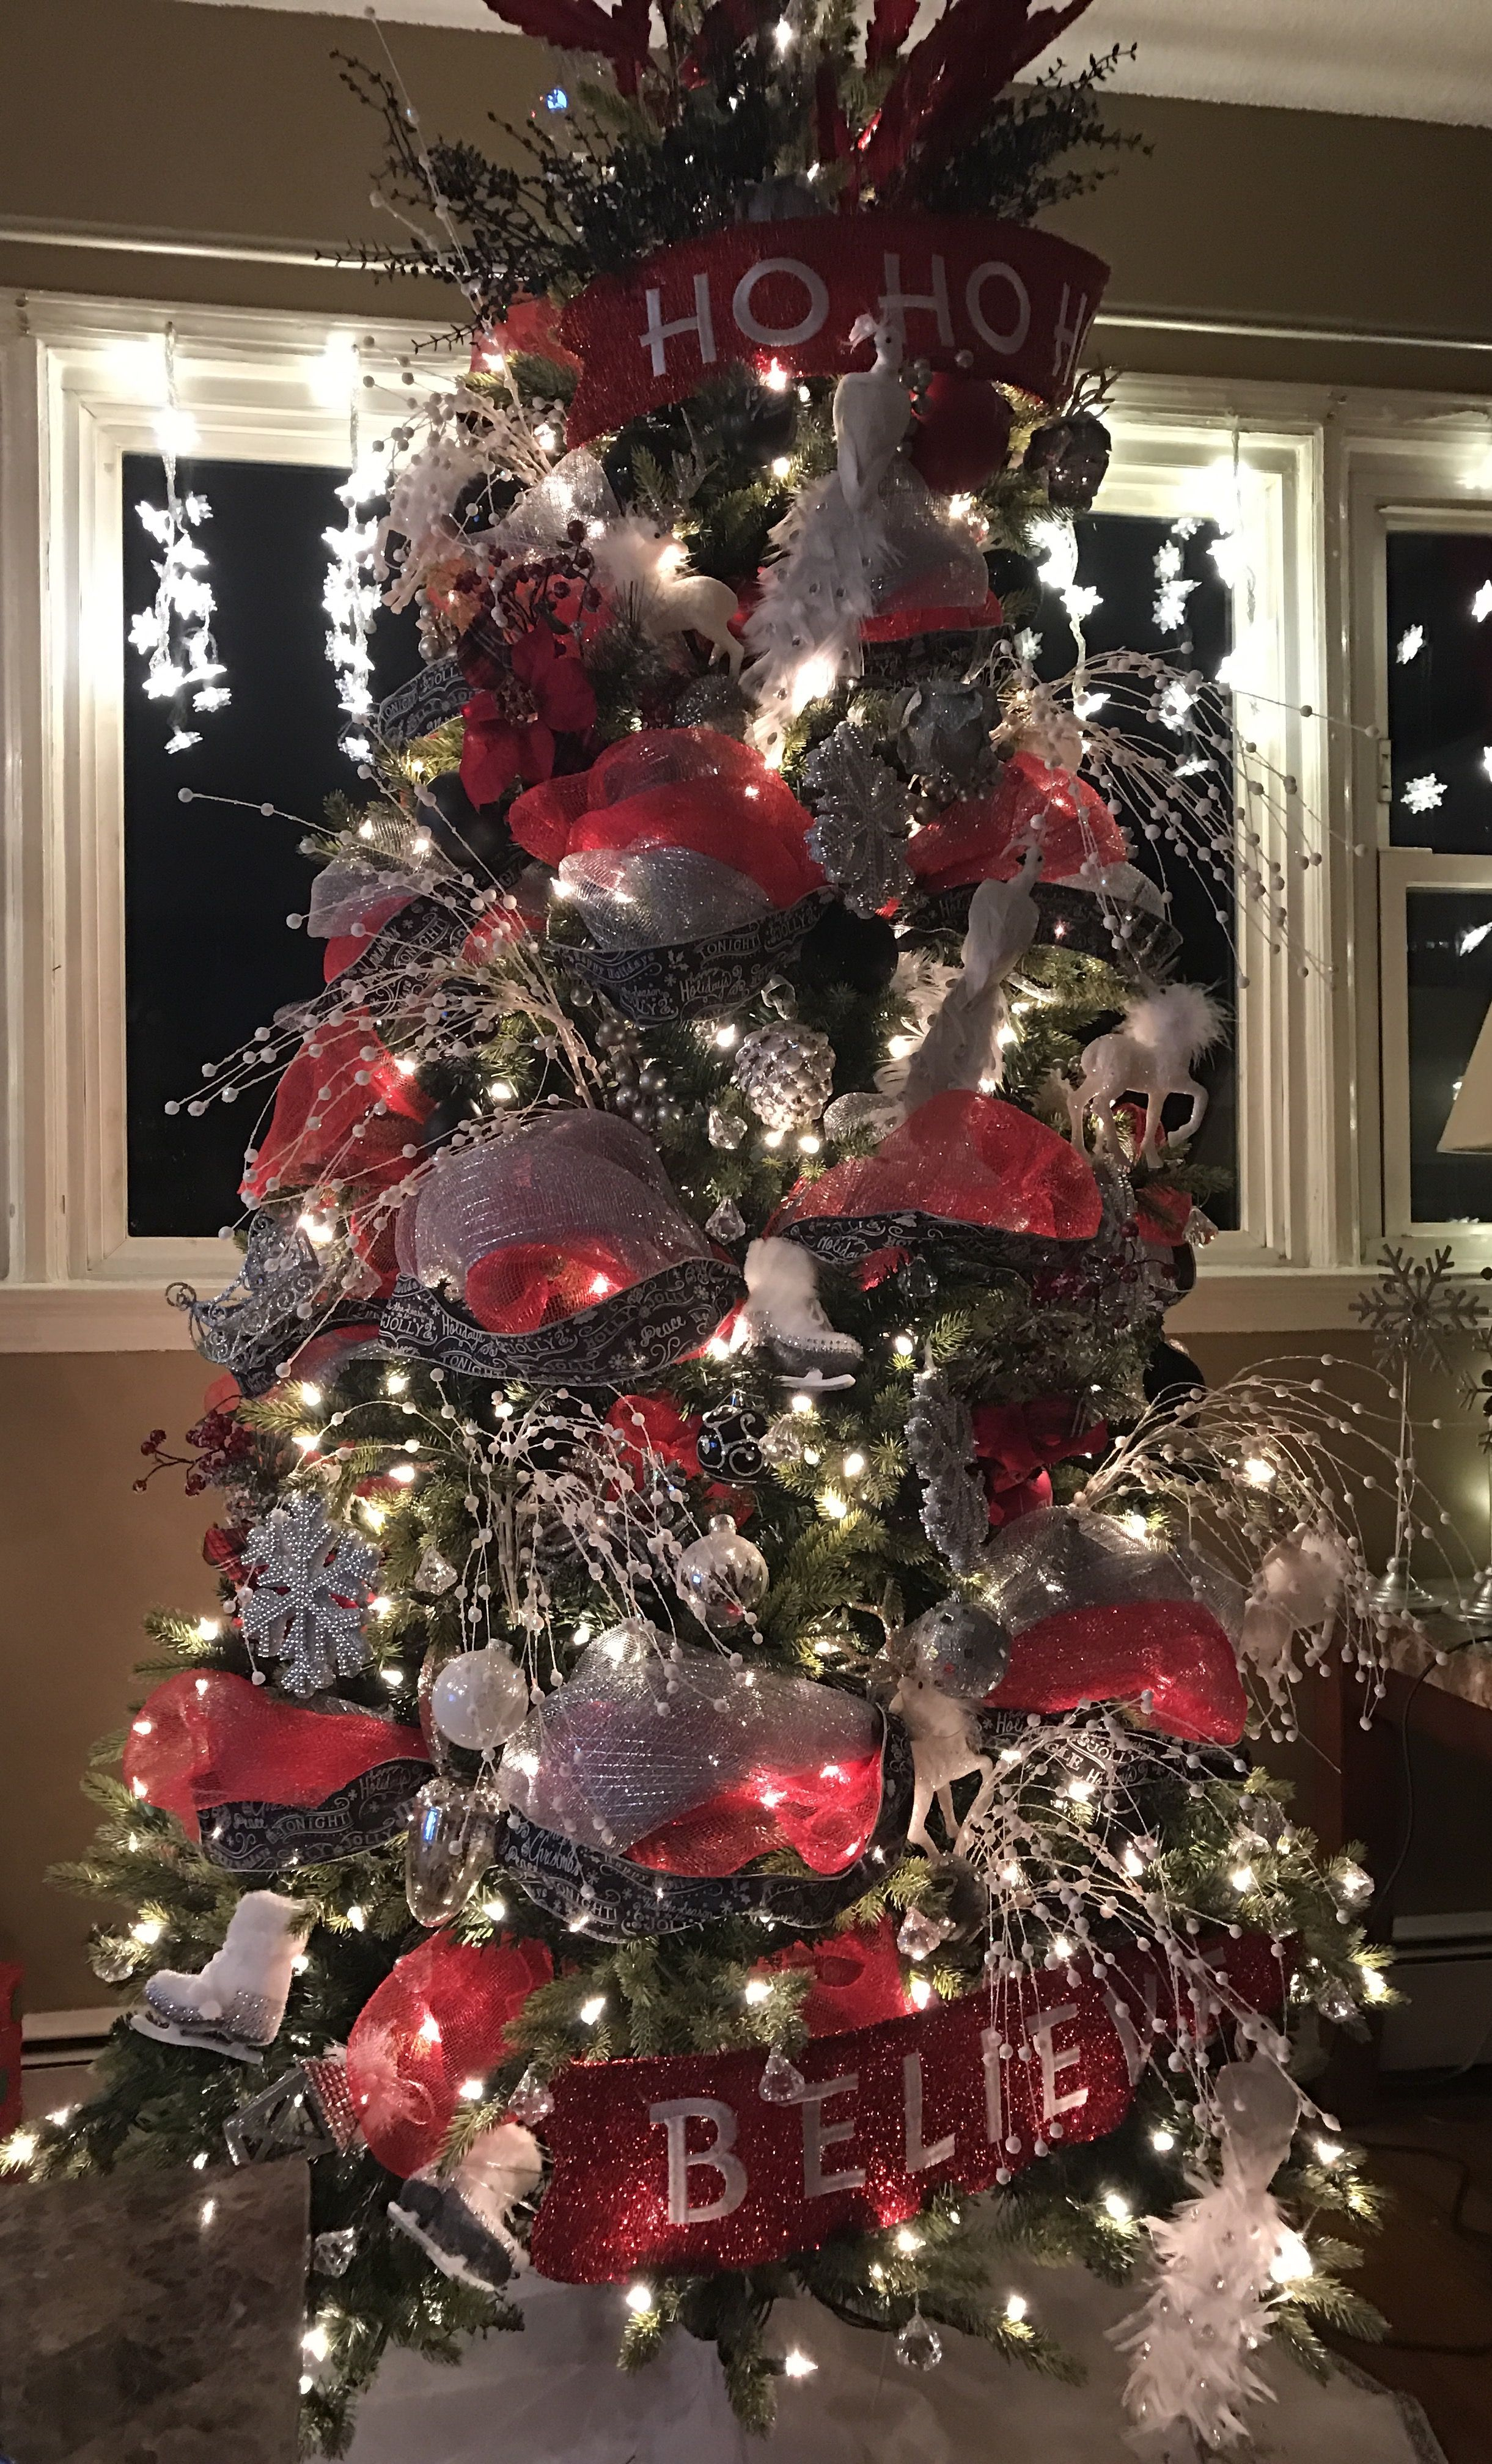 Red White Silver And Black Decorations With Deco Mesh And Holiday R White Christmas Tree Decorations Small Christmas Trees Decorated Ribbon On Christmas Tree